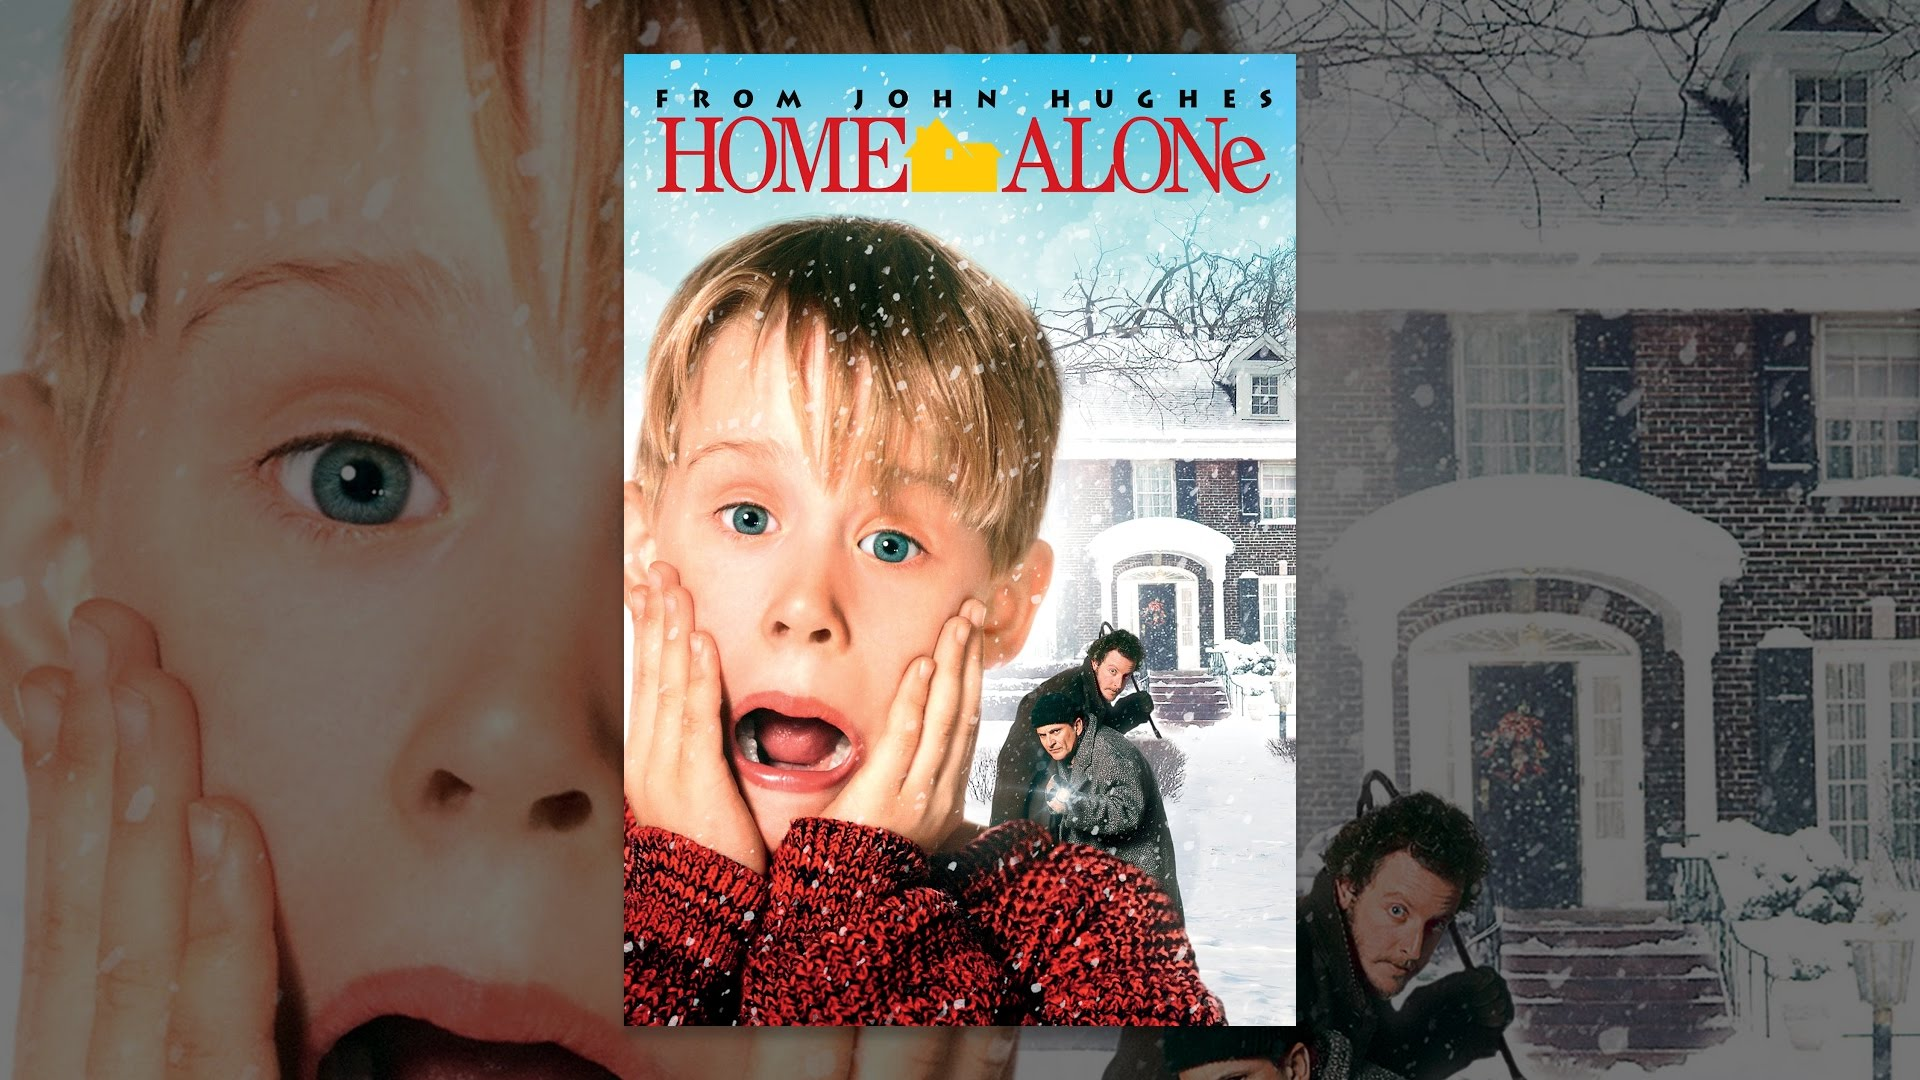 How Old To Be Home Alone